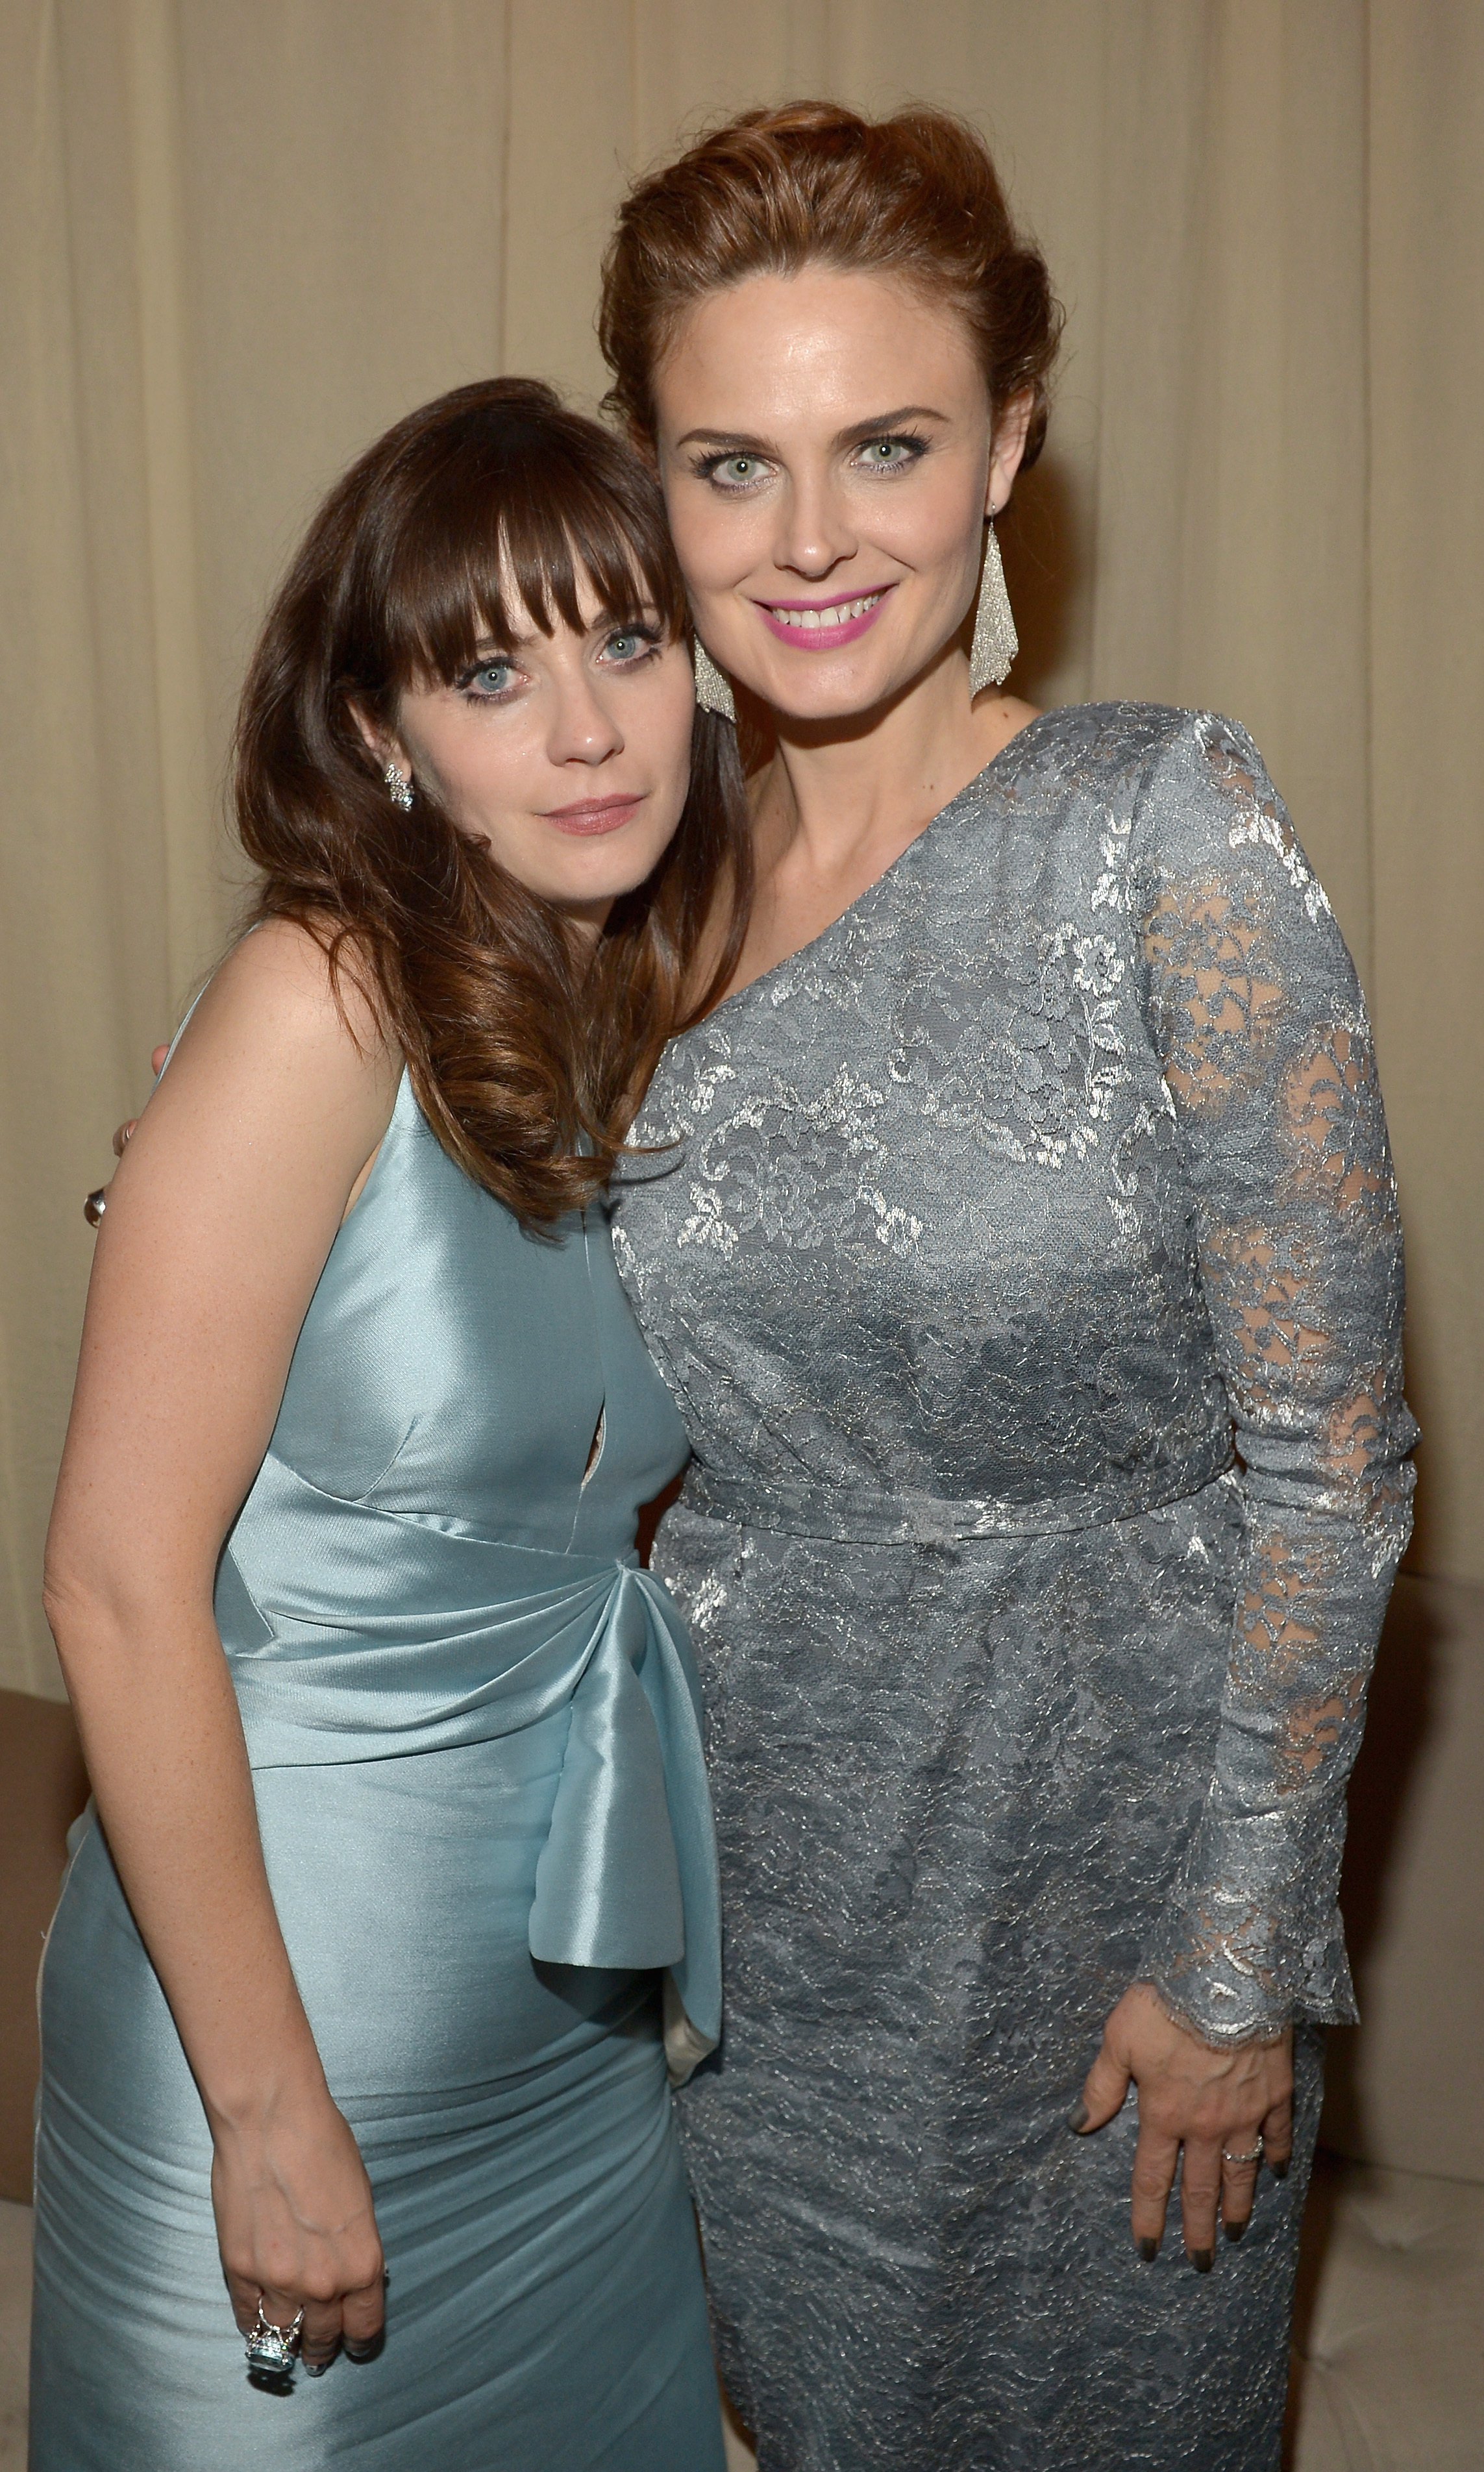 Zooey and Emily Deschanel show some sisterly love at the Fox party.